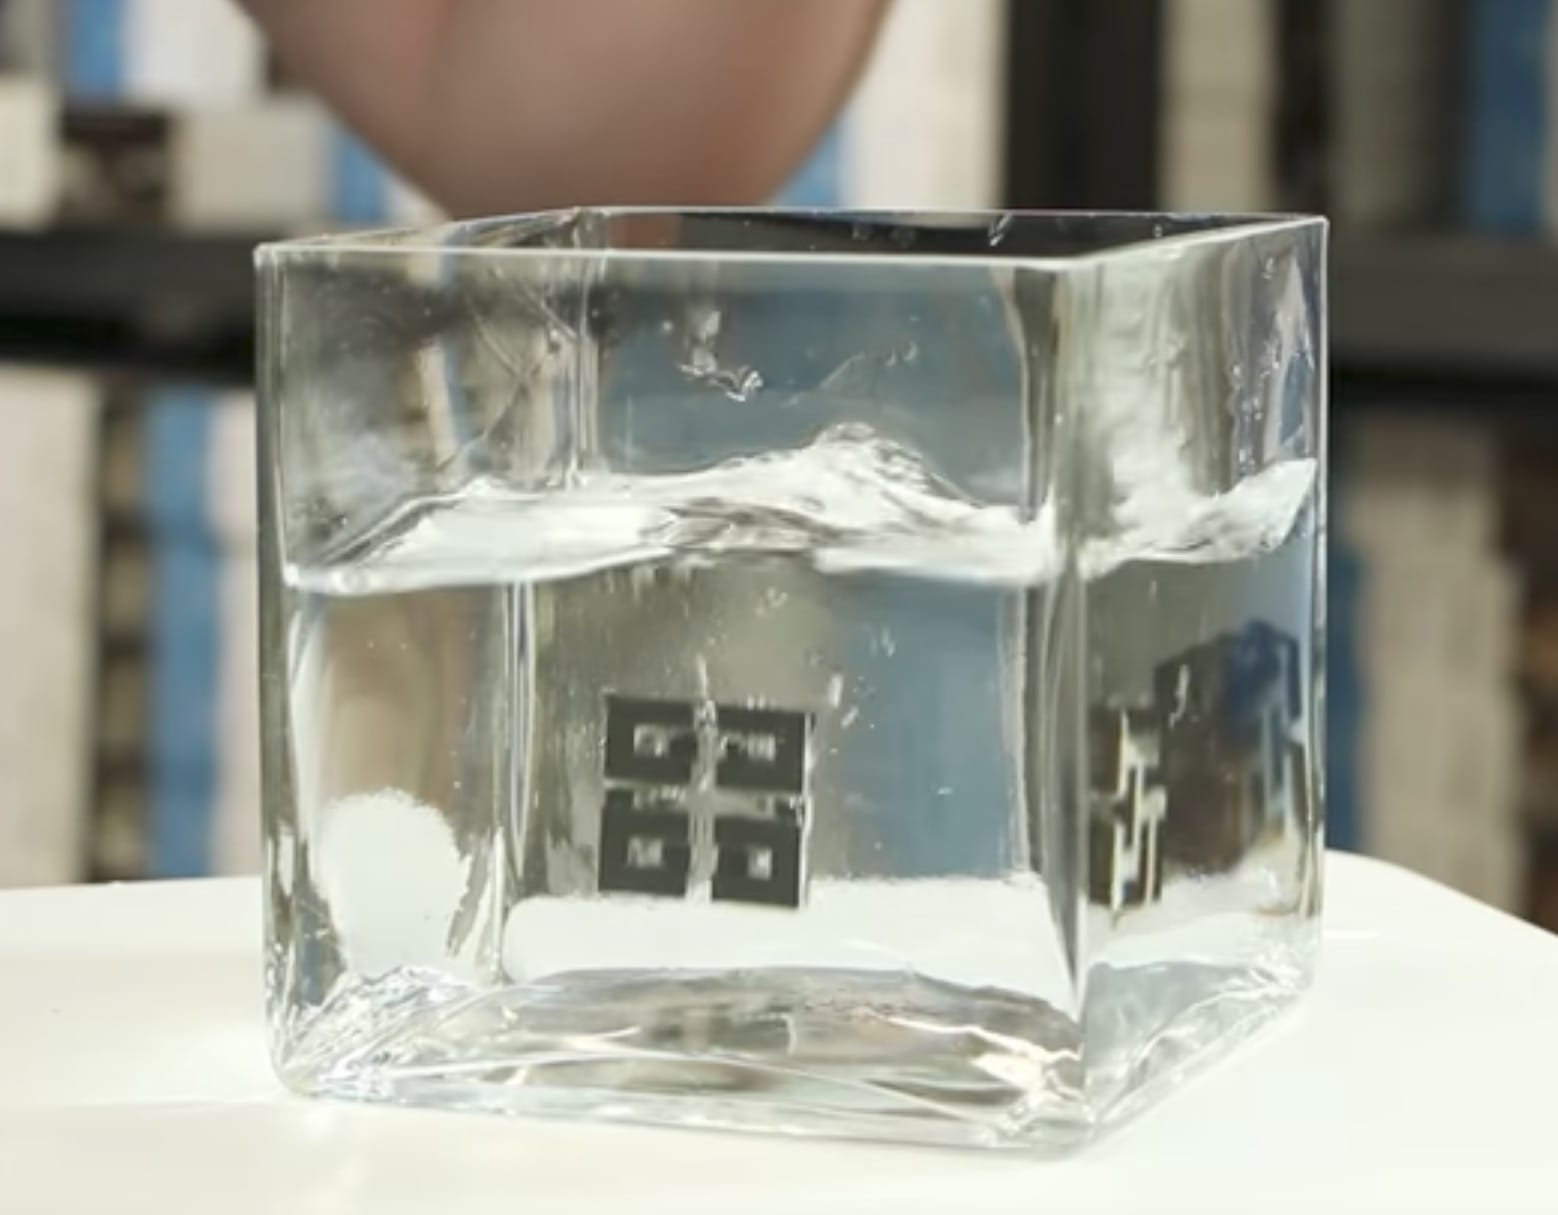 A 3D print having support structures made in 3D-Fuel's HydroSupport dissolving in water